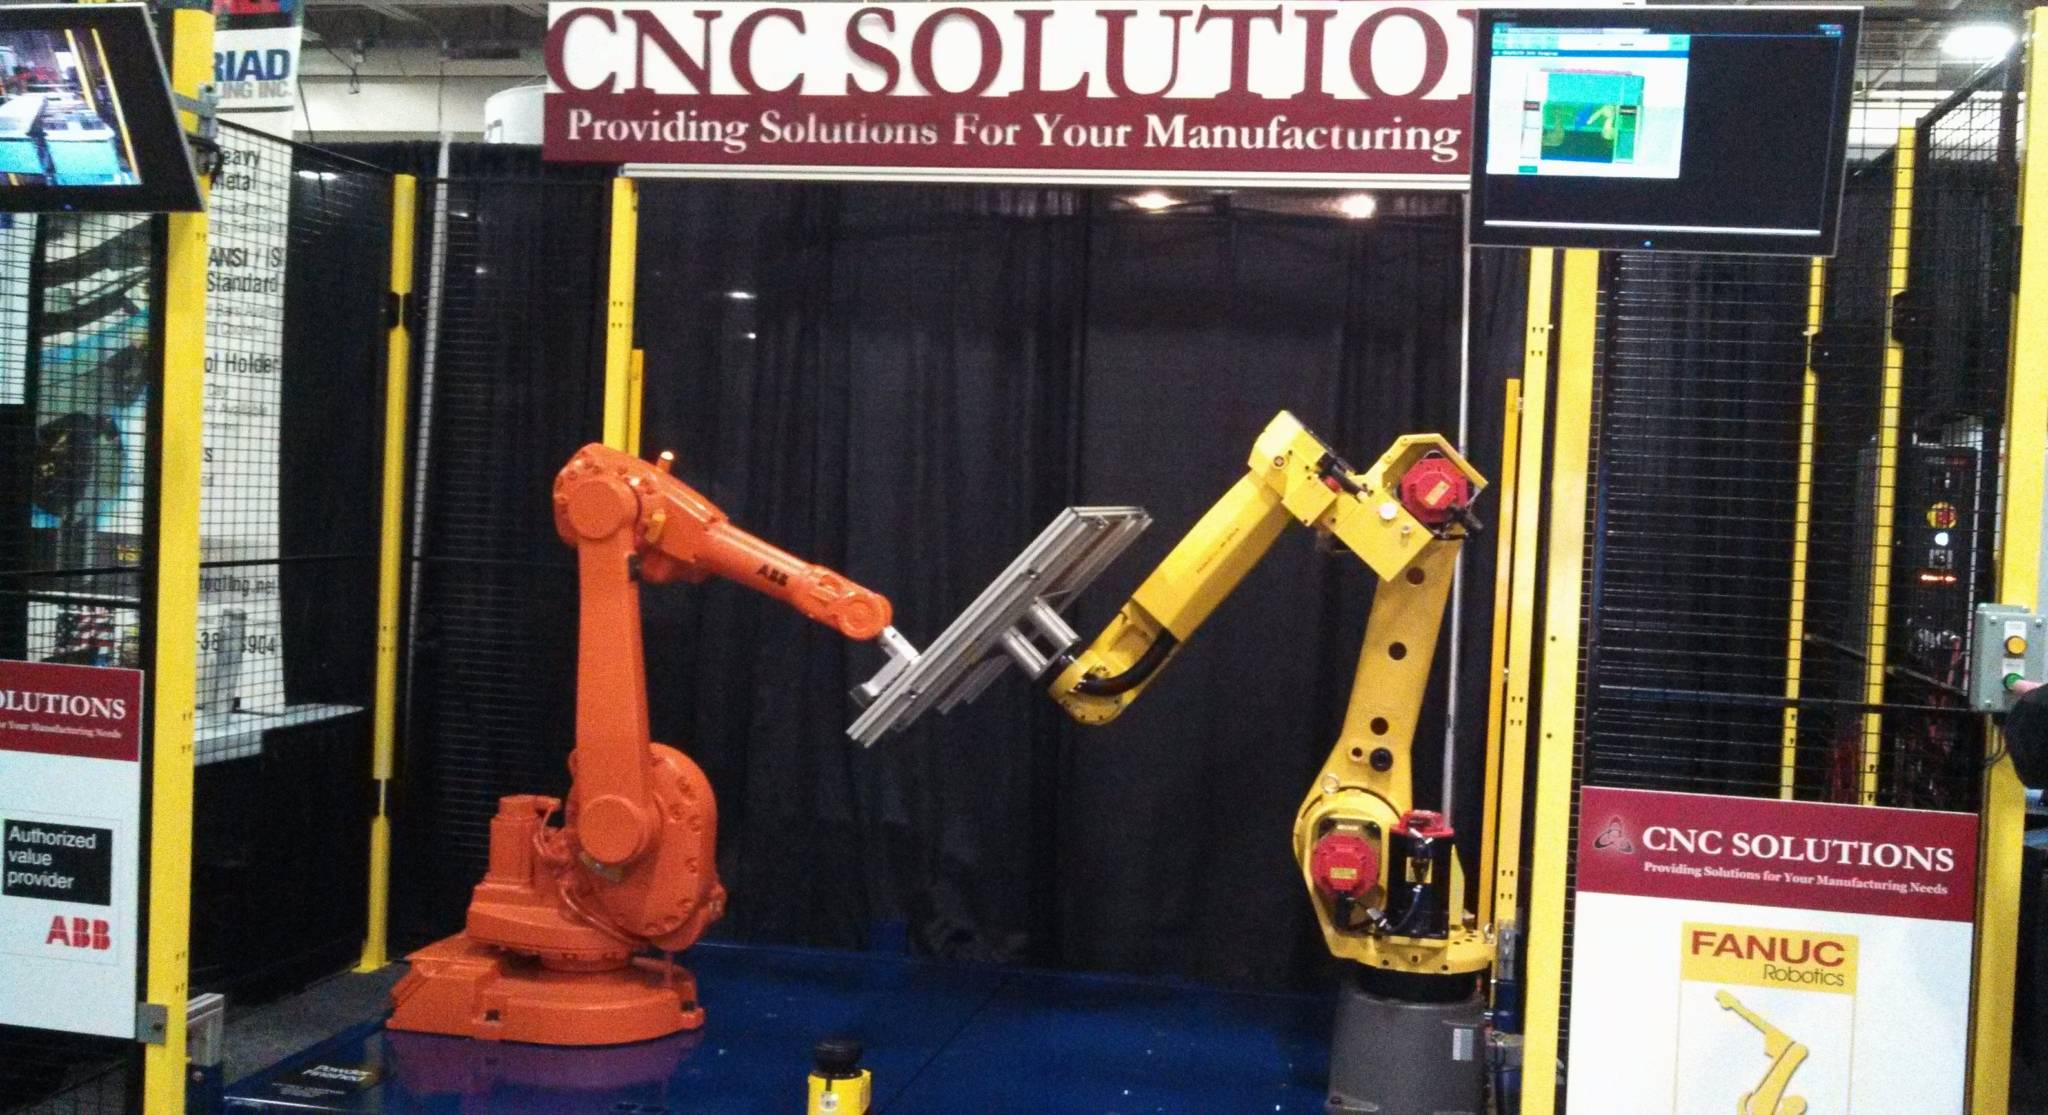 CNC Solutions 2013 Wisconsin Manufacturing & Technology Show booth.